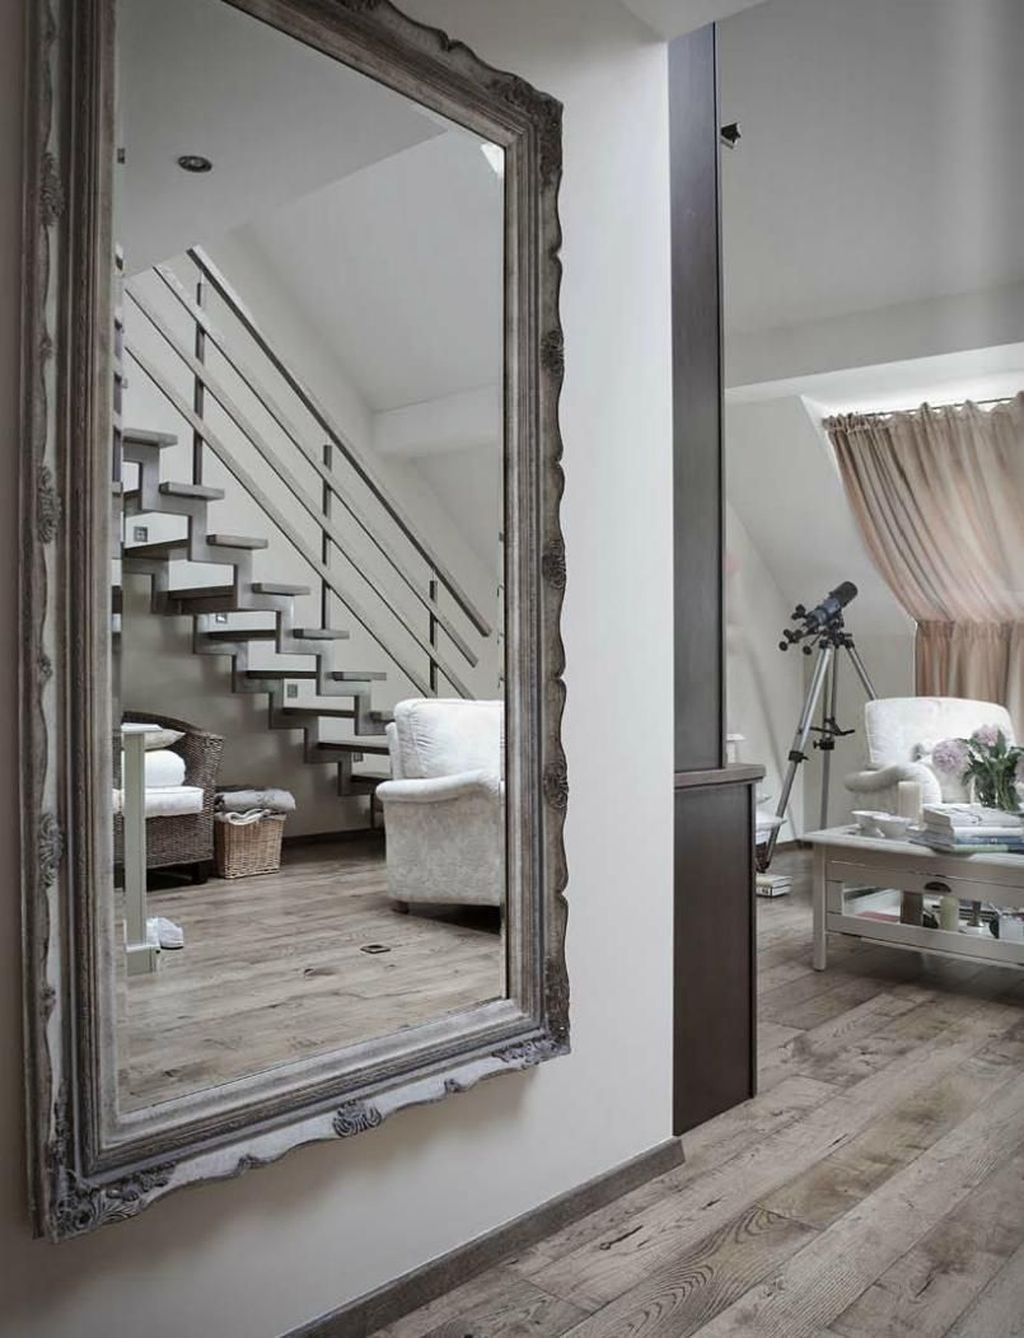 Decorative mirrors for dining room  stylish large decorative mirrors ideas for dining room  dining